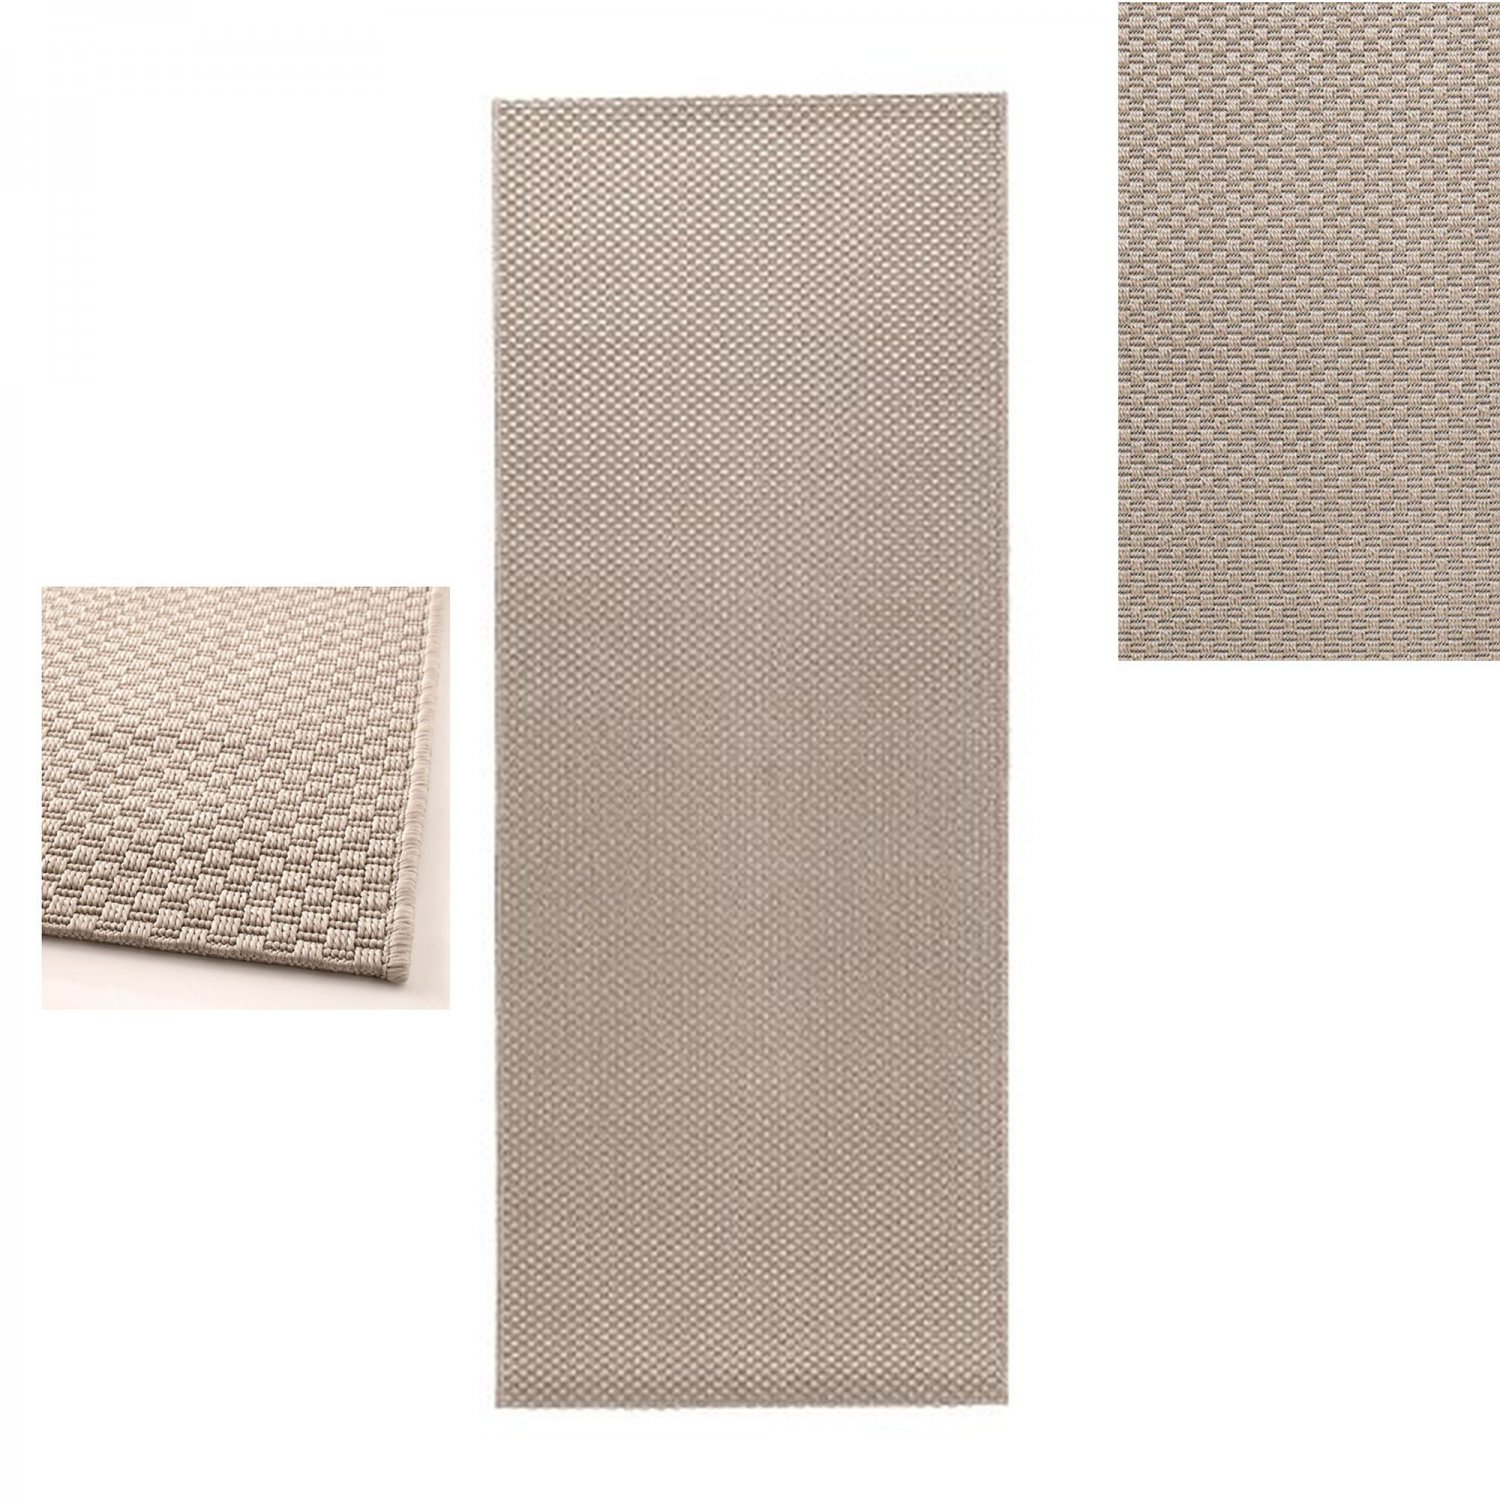 Ikea Kitchen Rugs Canada: IKEA MORUM Indoor Outdoor AREA RUG Runner Carpet BEIGE